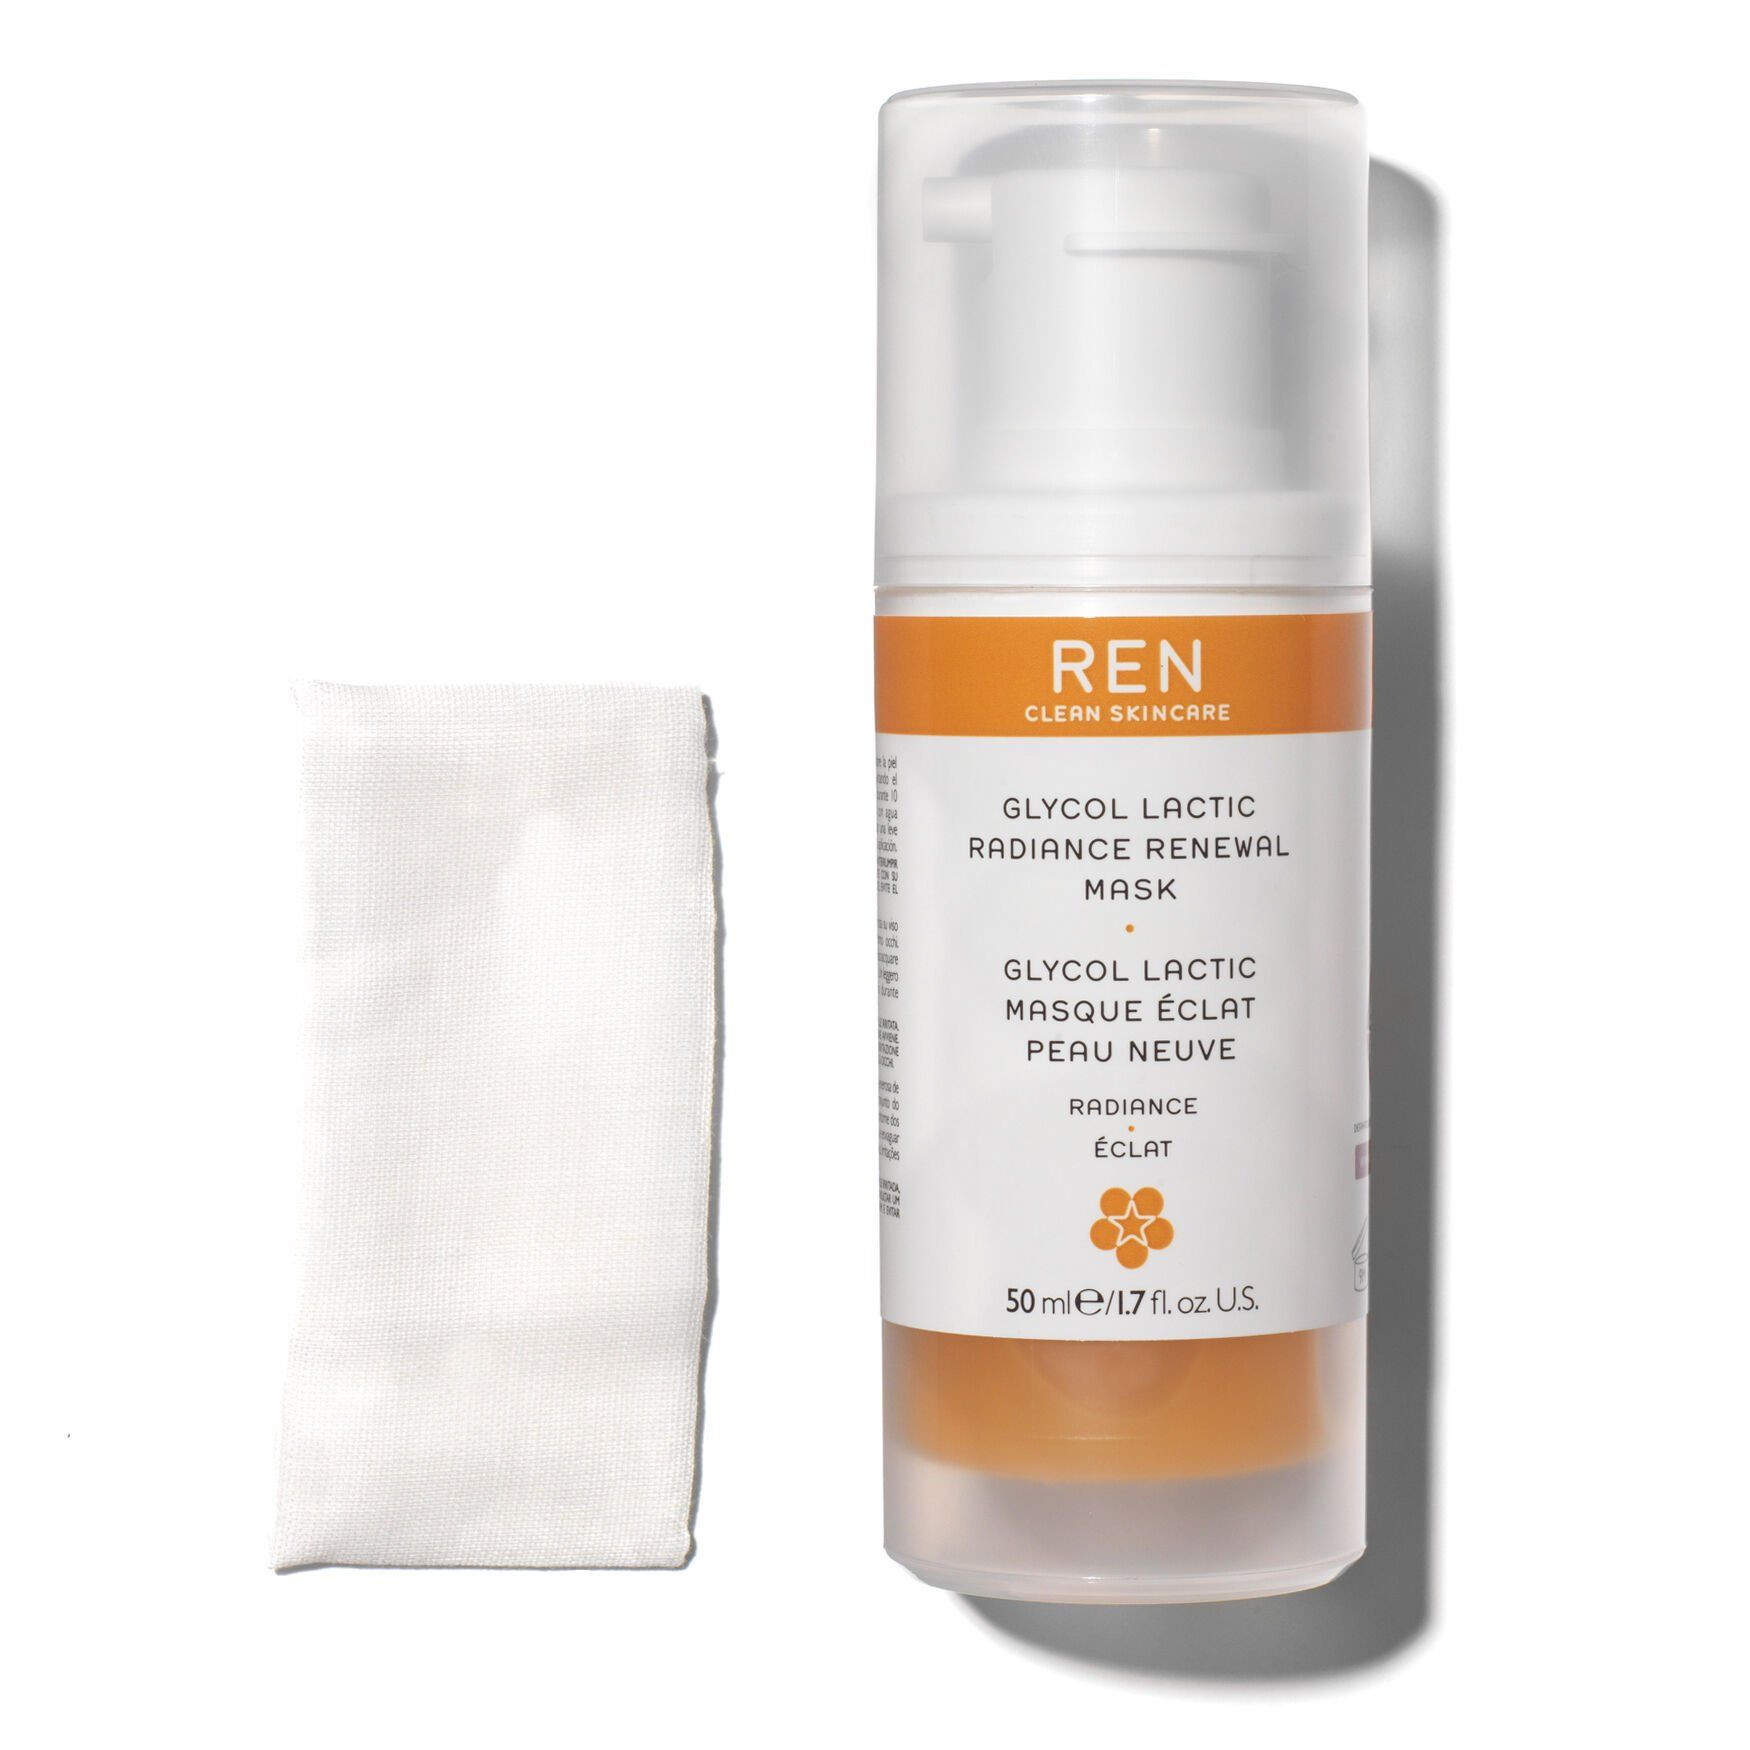 My Celebrity Life – Ren Clean Skincare Glycol Lactic Radiance Renewal Mask